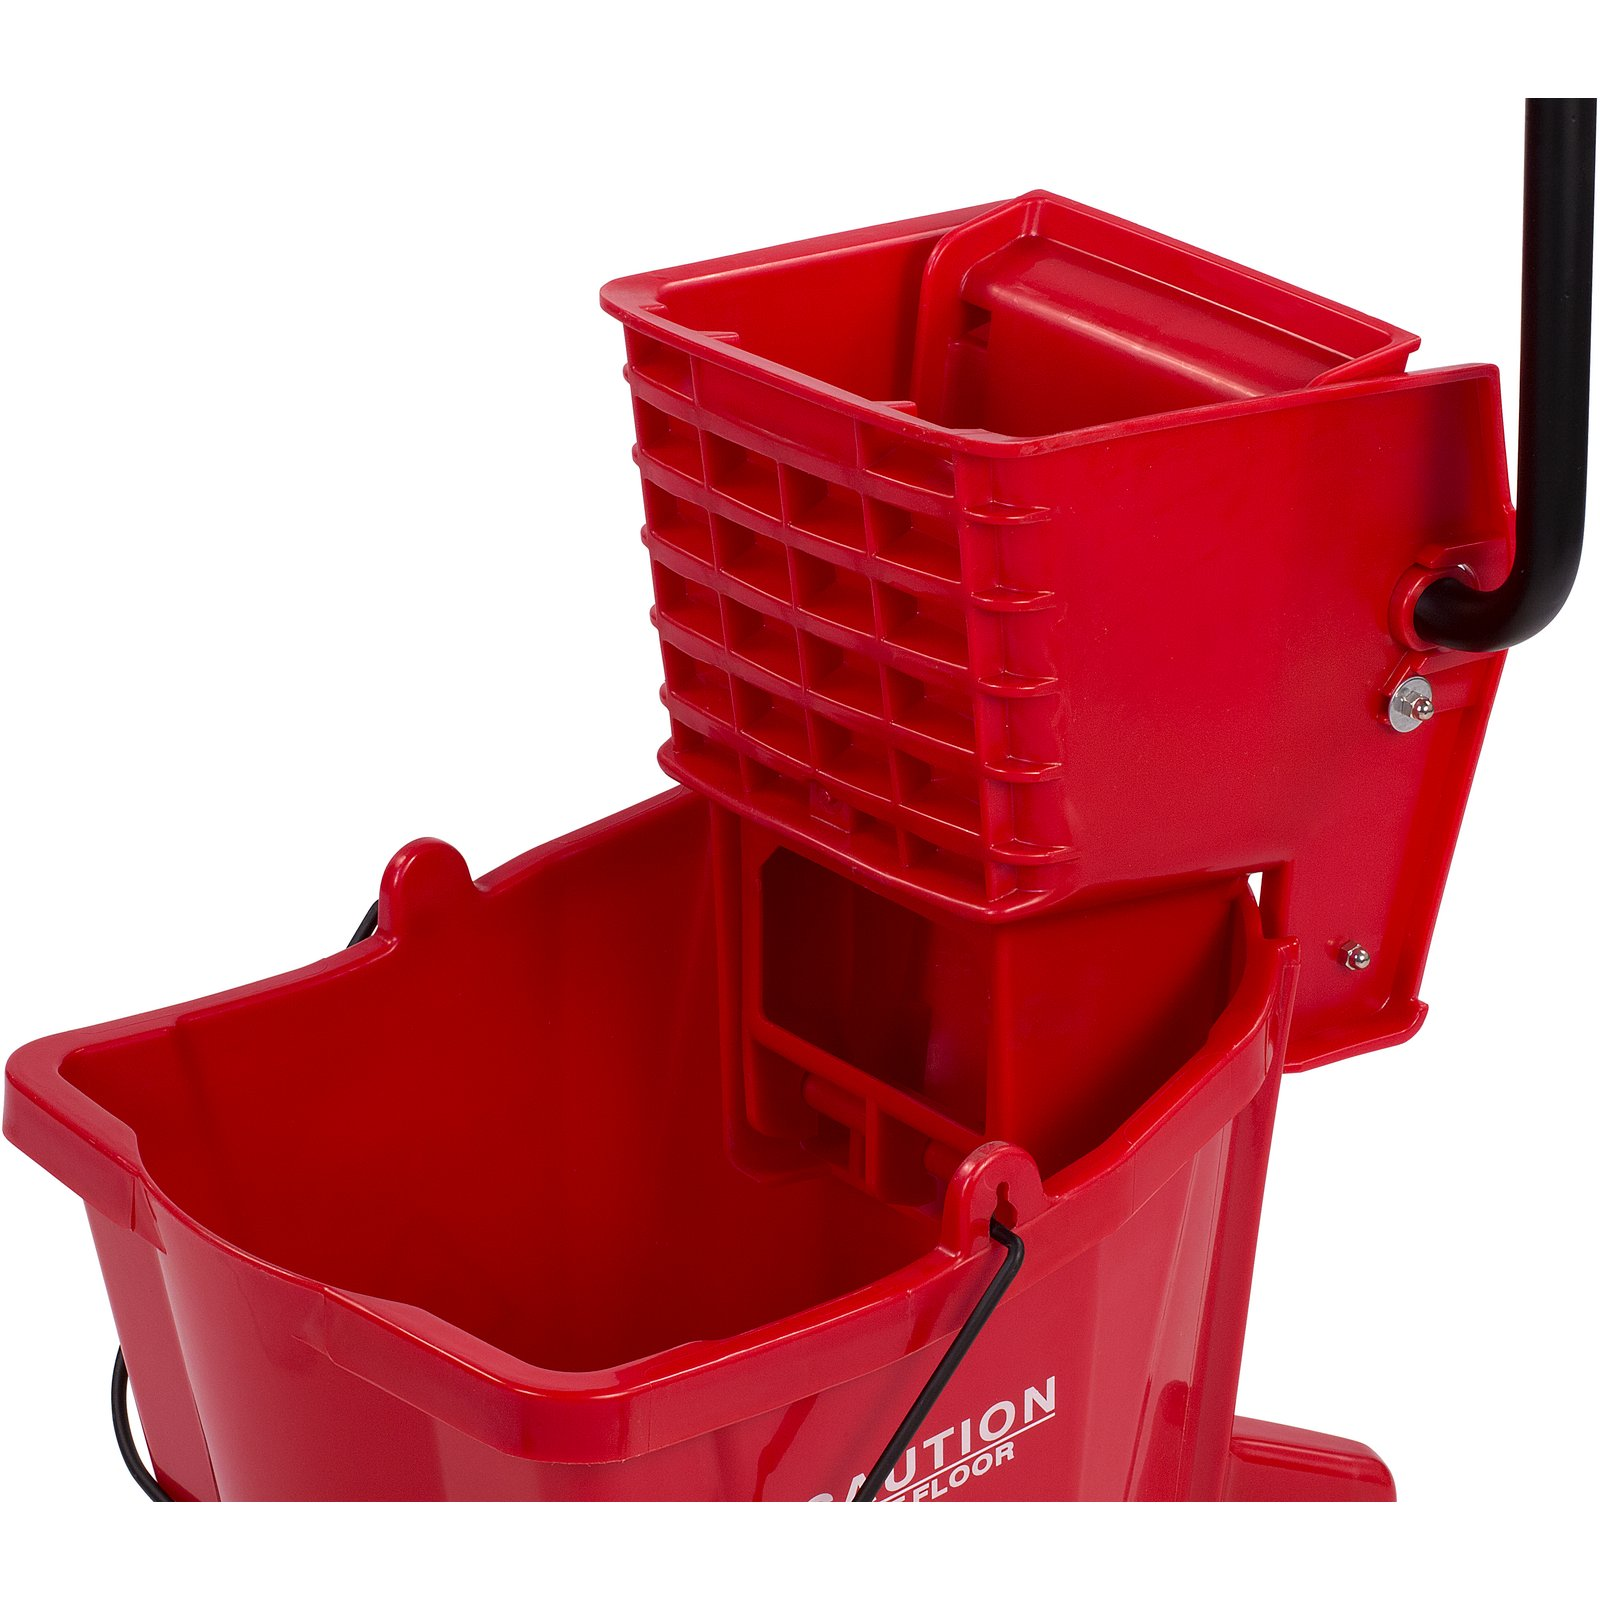 Red mop bucket with wringer silicone glue sticks